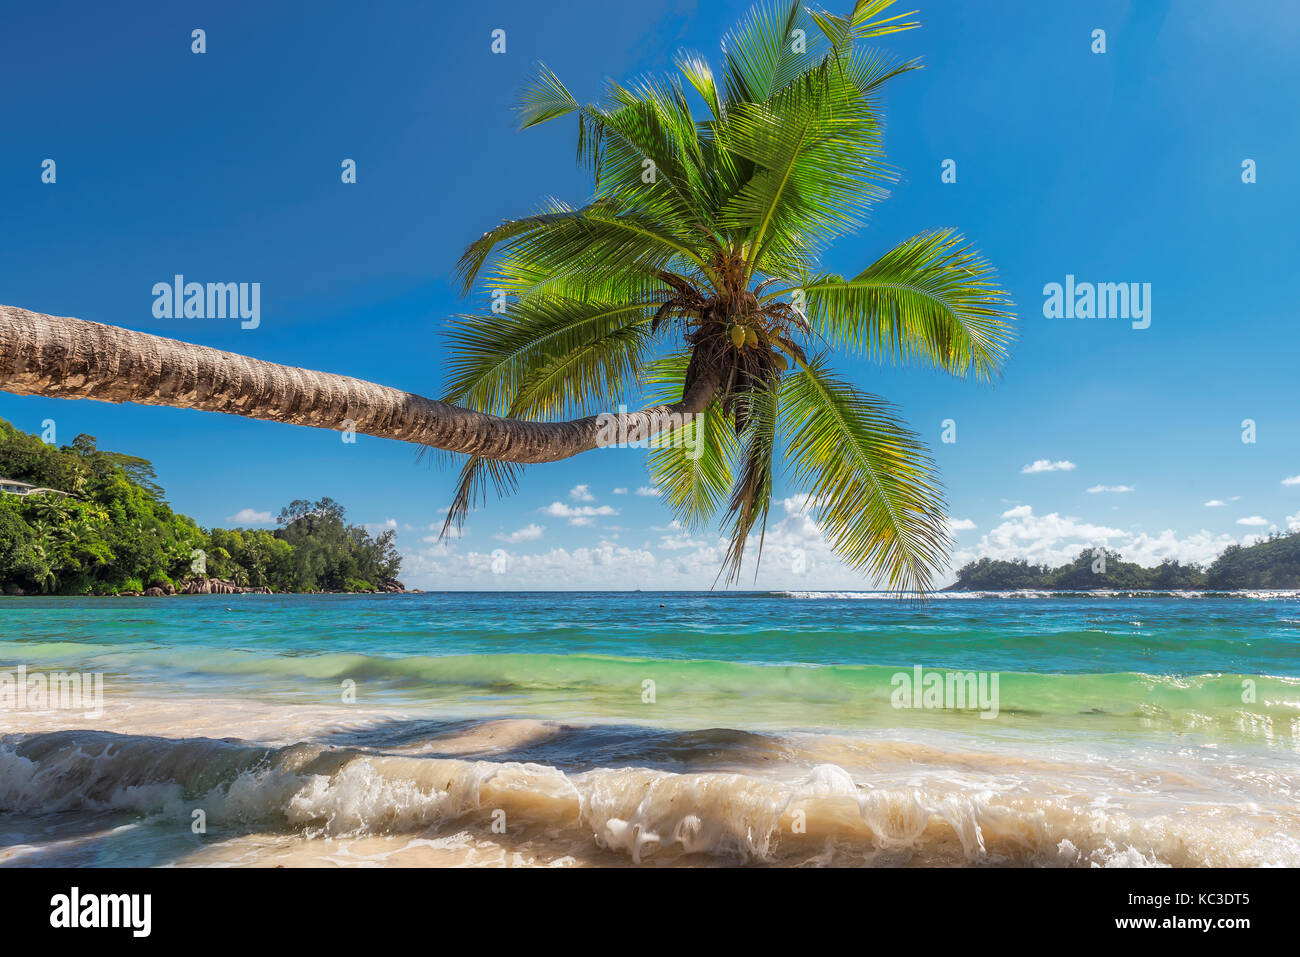 The palm tree on beautiful beach. - Stock Image